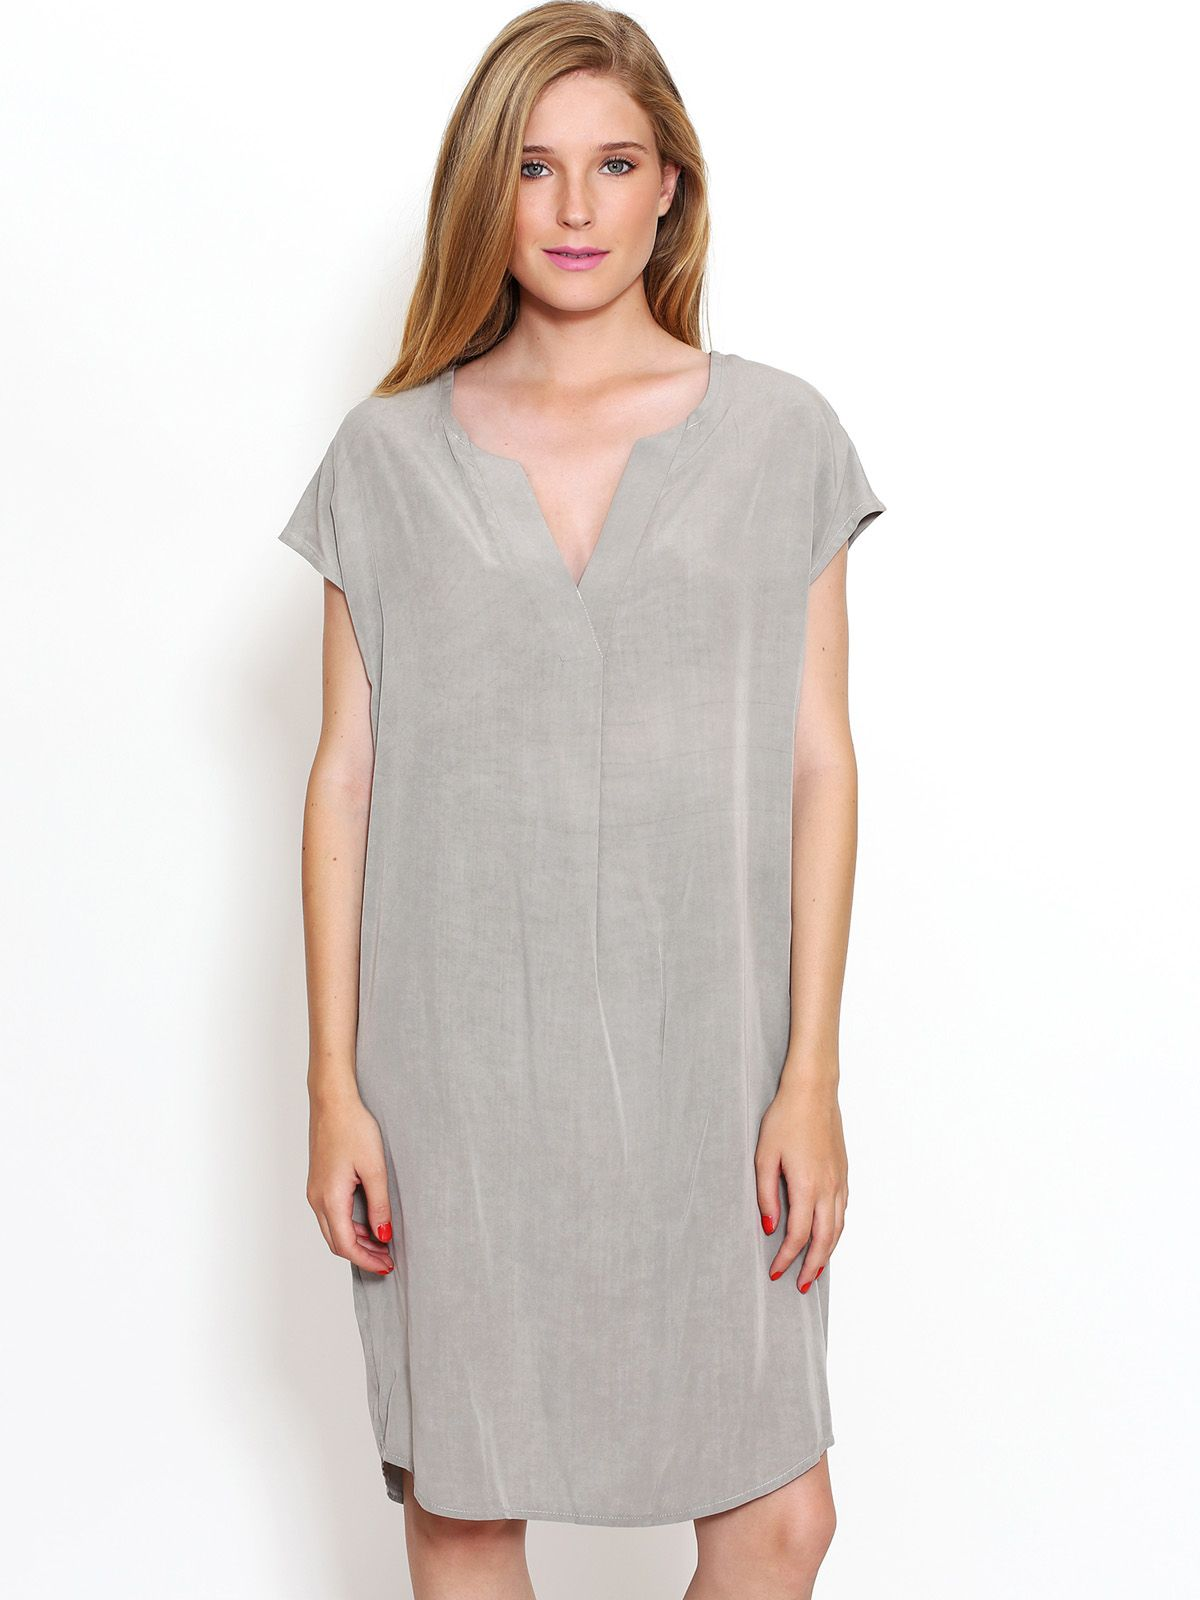 Dress up meaning - The Kaftan Shift Dress In Gray Black And Royal Blue This Dress Is